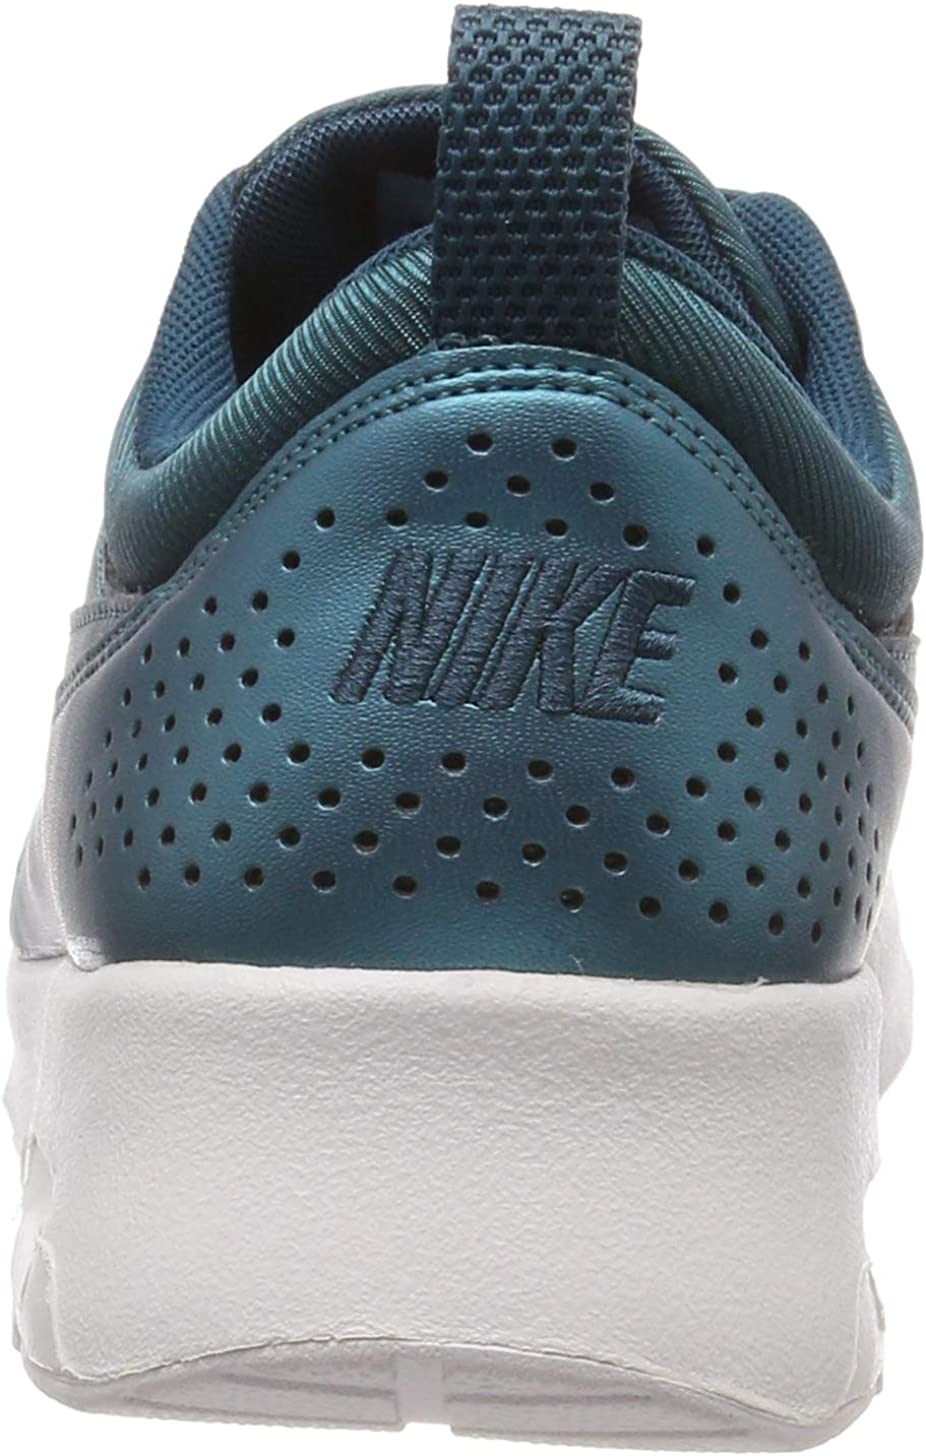 Nike 861674-901, Scarpe da Fitness Donna Vari Colori Mtlc Dark Sea Mtlc Dark Sea Summit White